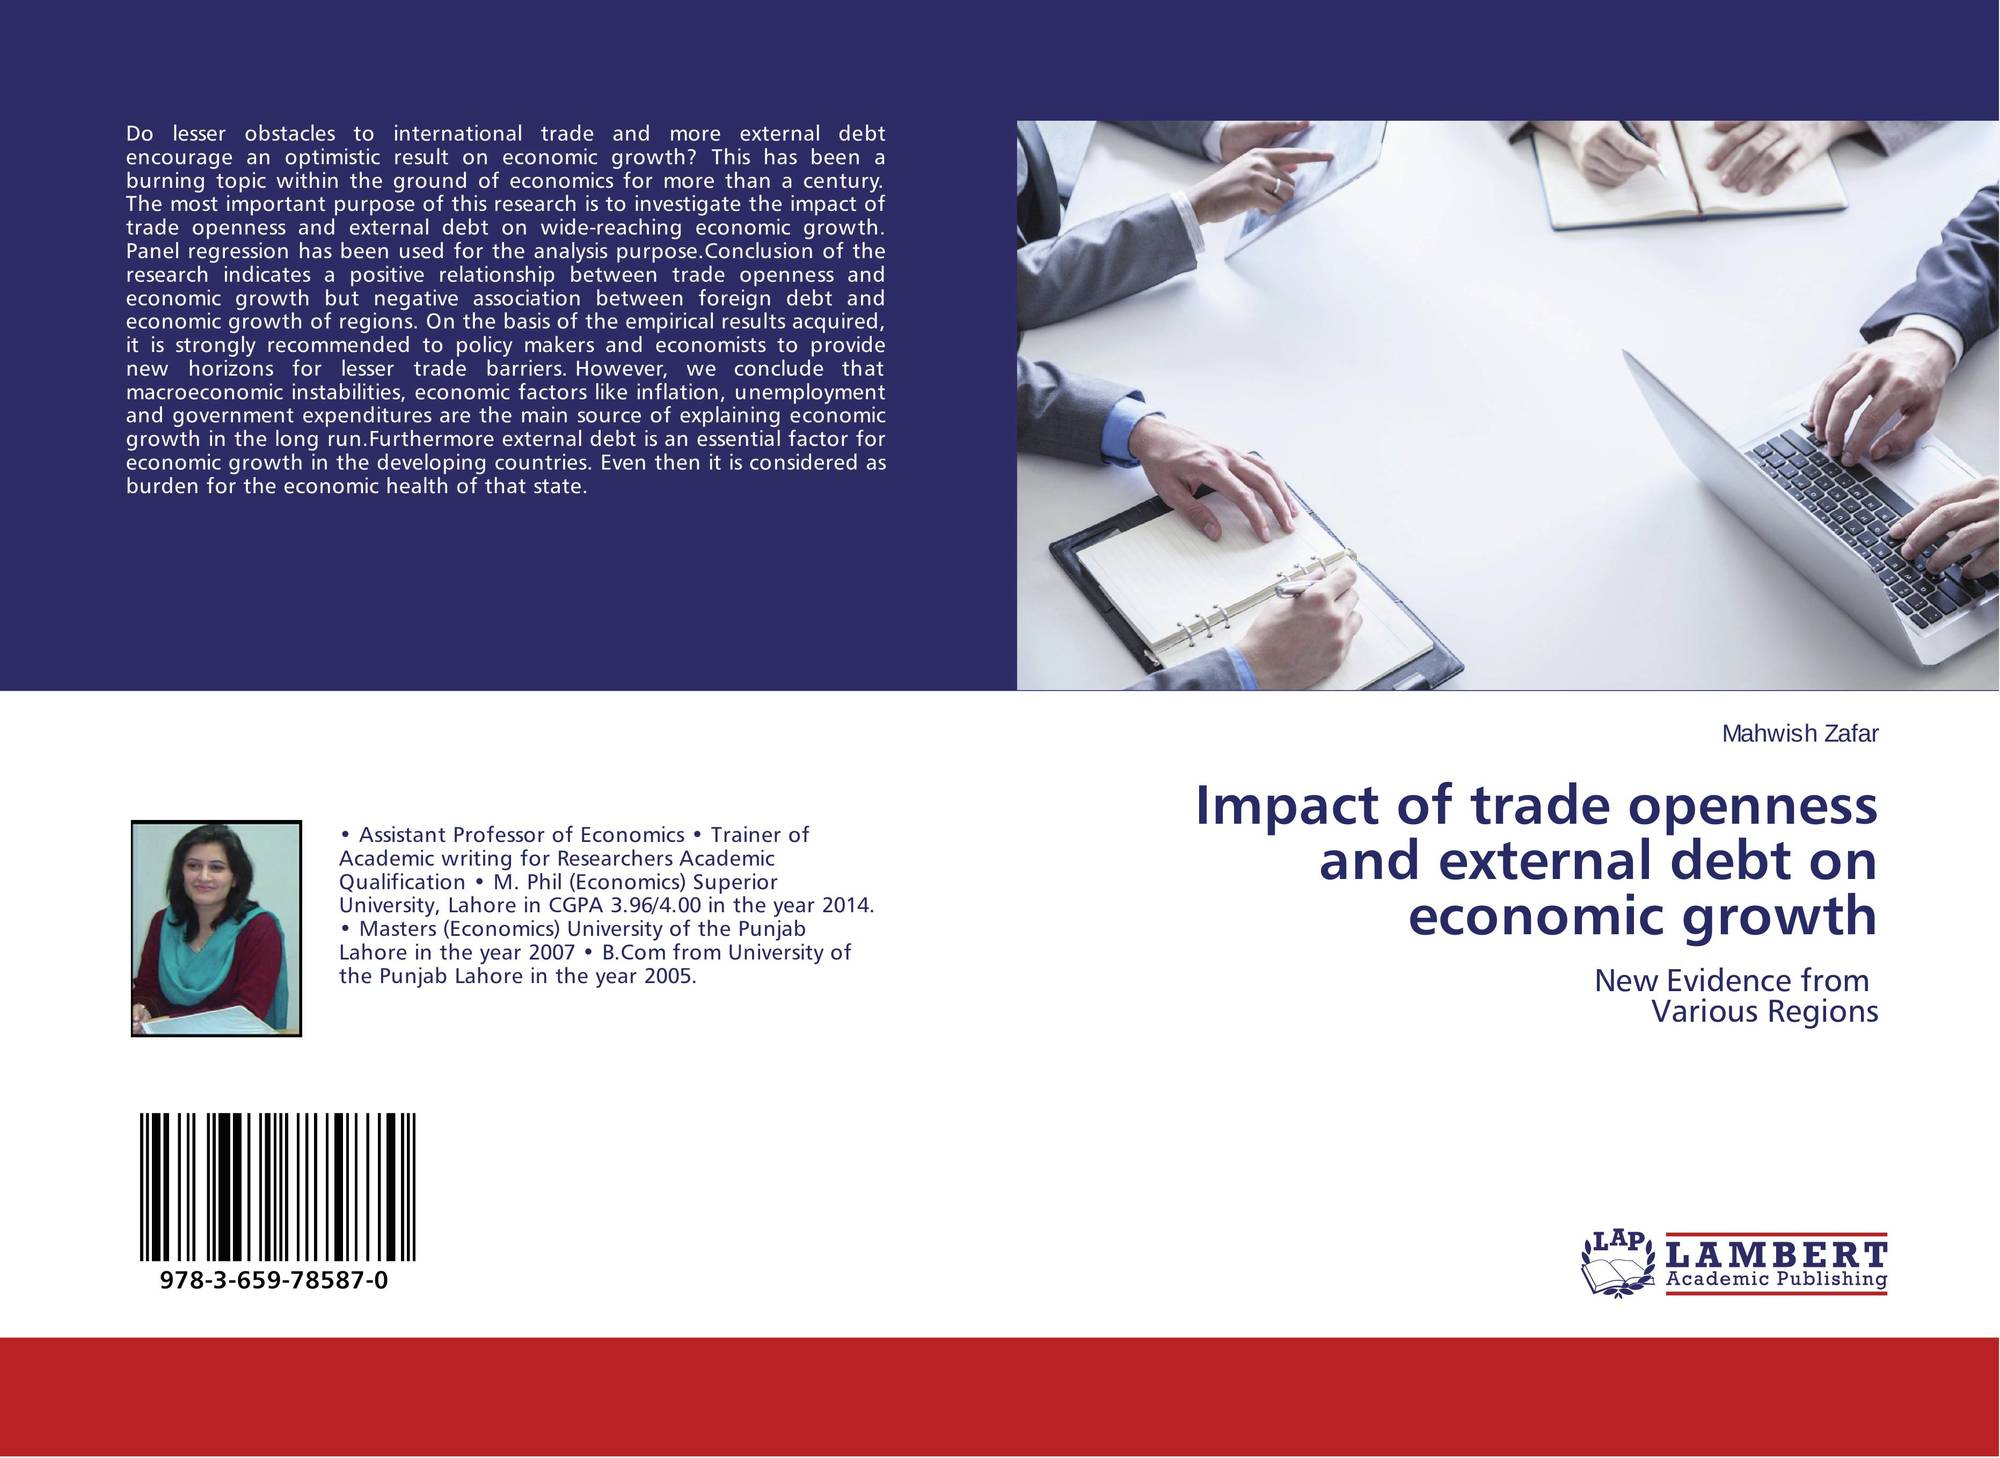 trade openness and its impact on economic growth Sources of economic growth in the southern african  its likely impact on povery and  region are: inflation, government expenditures, openness to trade.